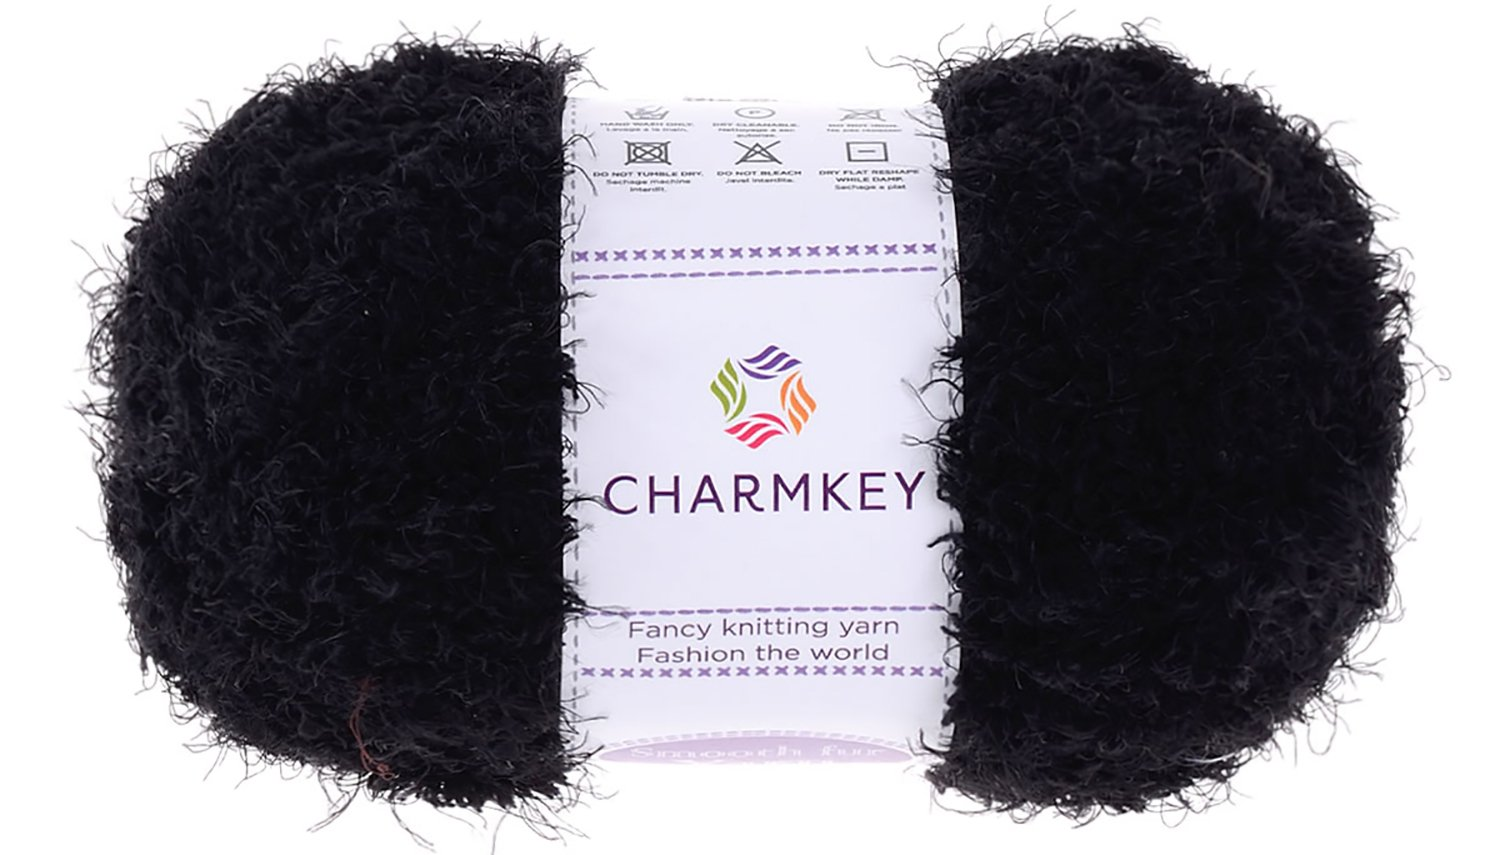 Charmkey Smooth Fur Yarn Super Soft Feeling 5 Bulky Fluffy Solid Colors Knitting Craft Polyester Fuzzy Nylon Yarn for Sweater Shawl Scarf Animal Toys and More, 1 Skein, 3.35 Ounce (Jet Black)